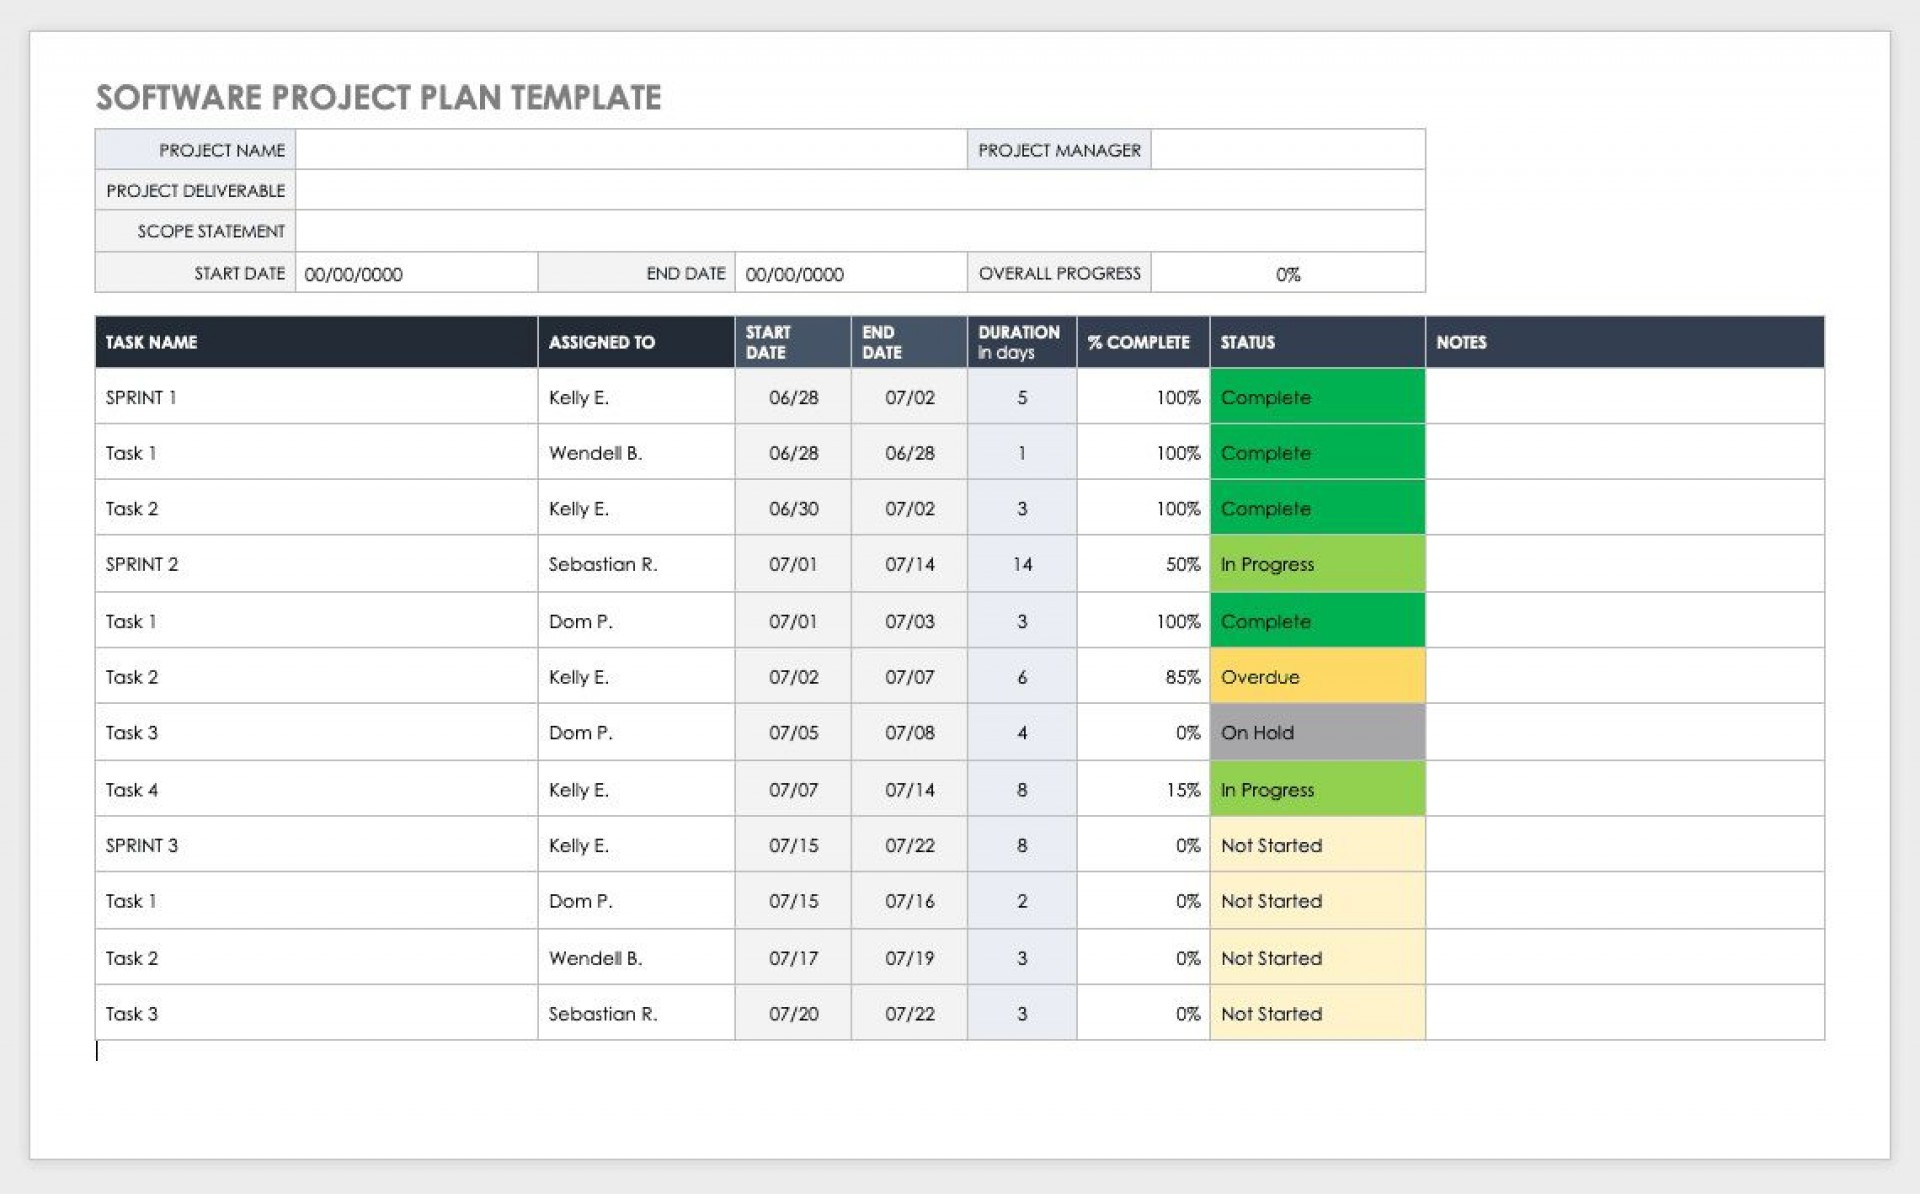 002 Frightening Project Plan Template Word Highest Clarity  Simple Management Example Communication1920